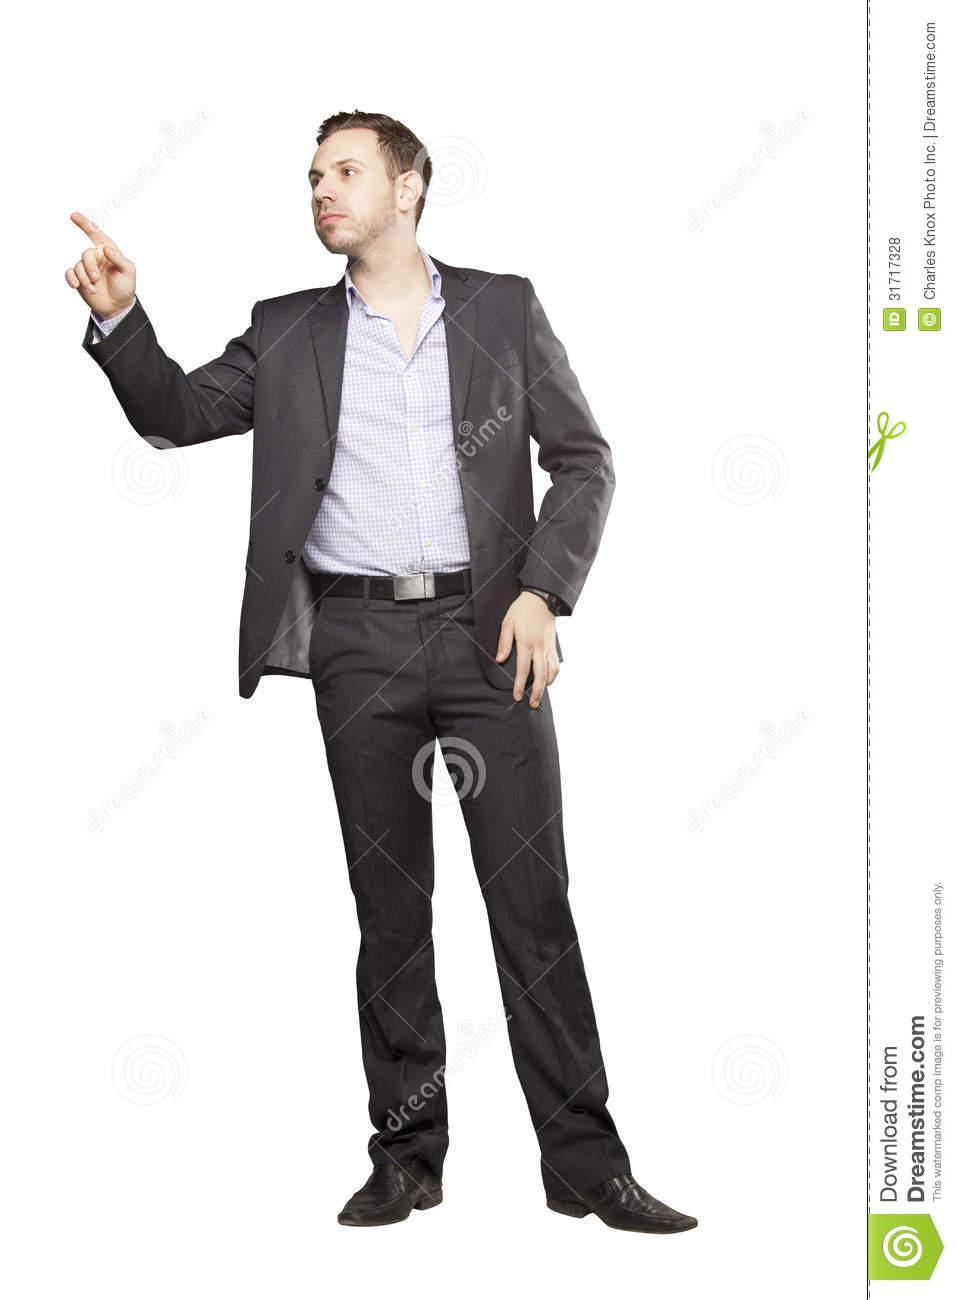 Young Man In Black Suit Gesturing Royalty Free Stock ...